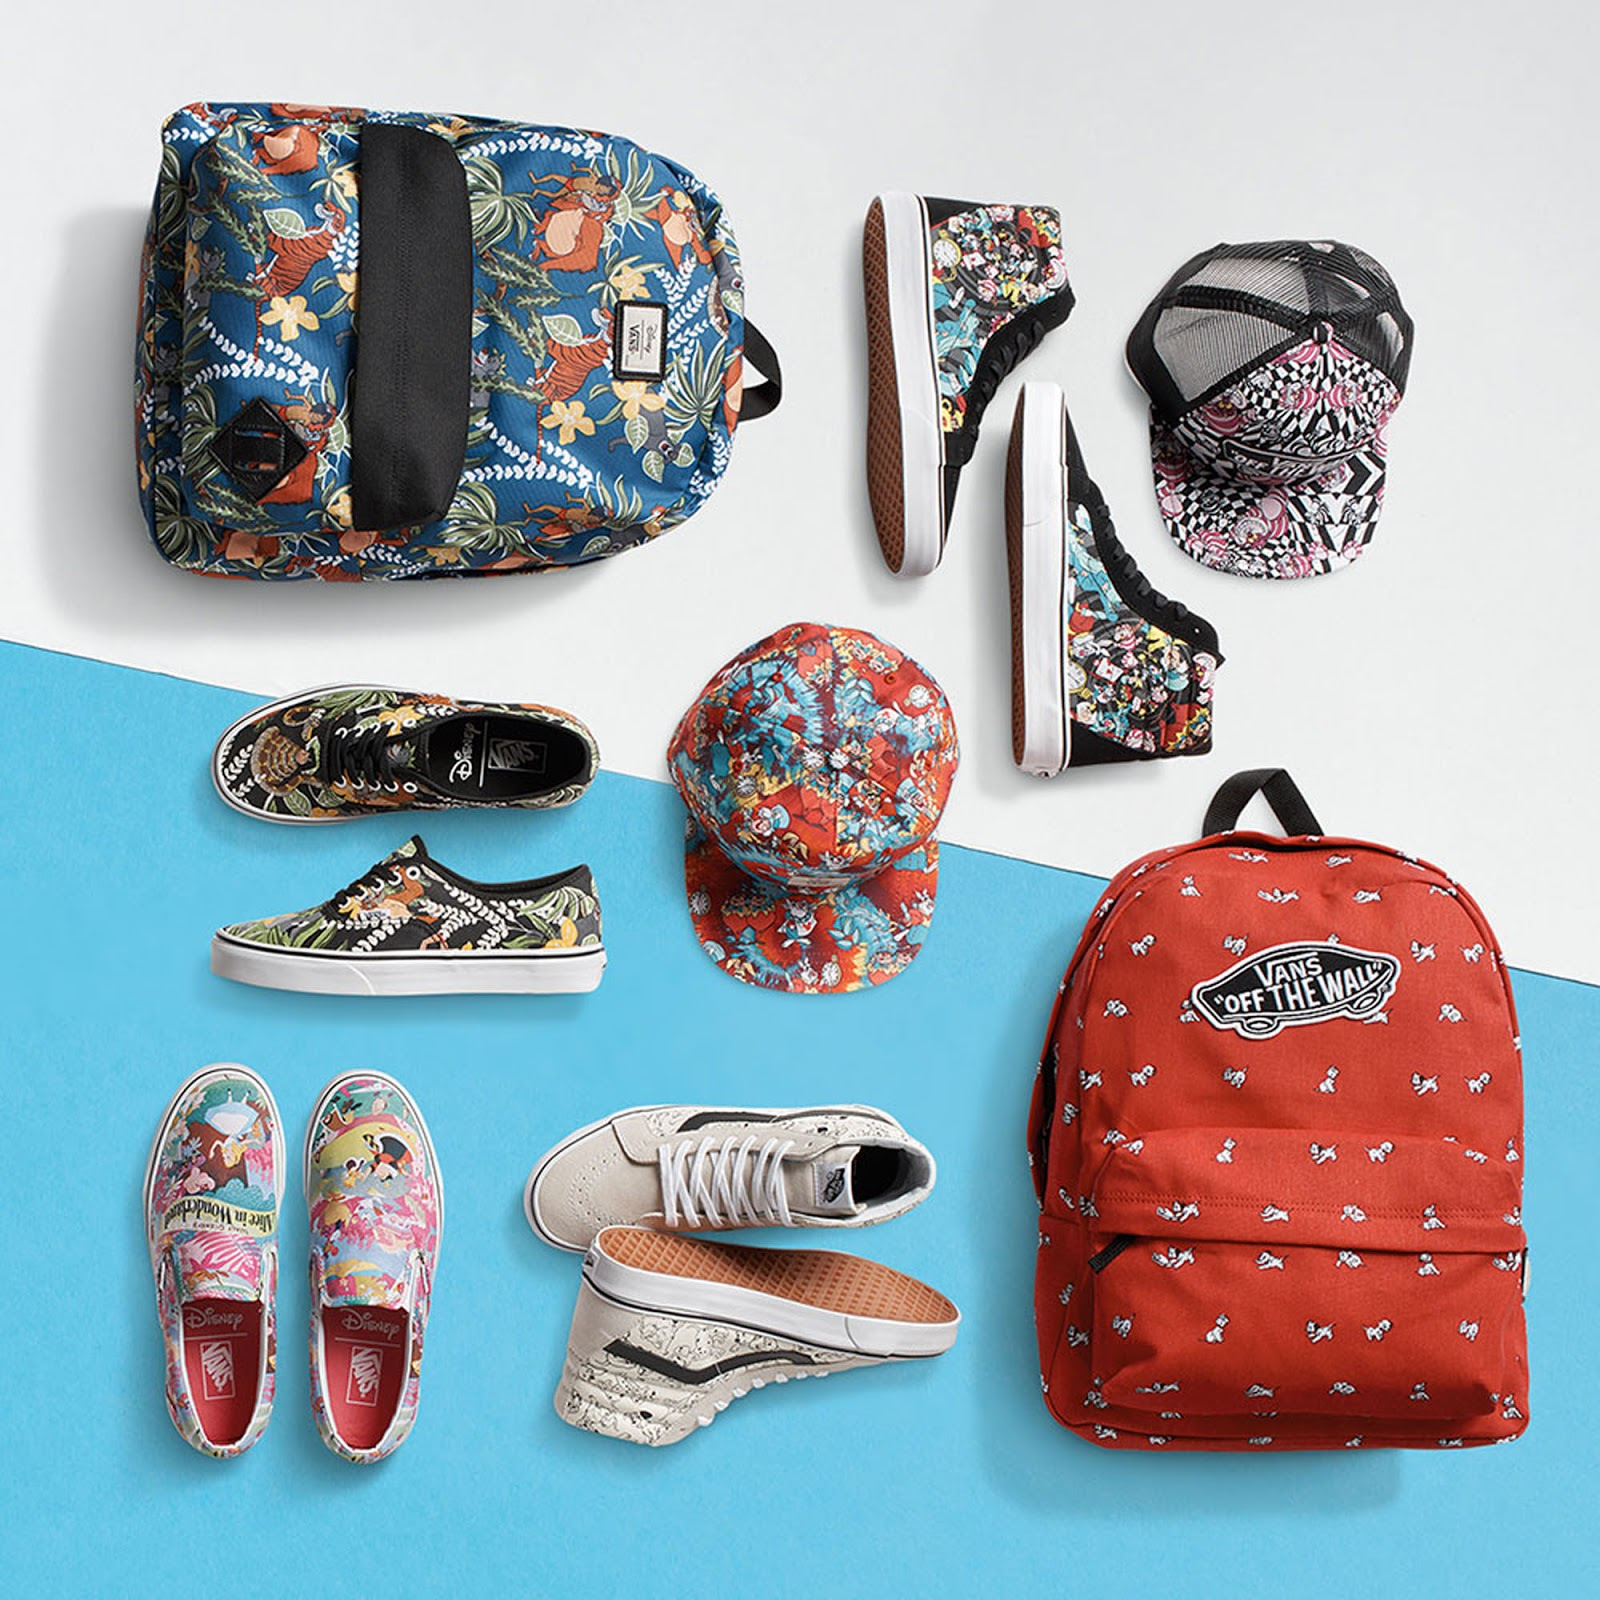 Eniwhere Fashion - Vans for Disney